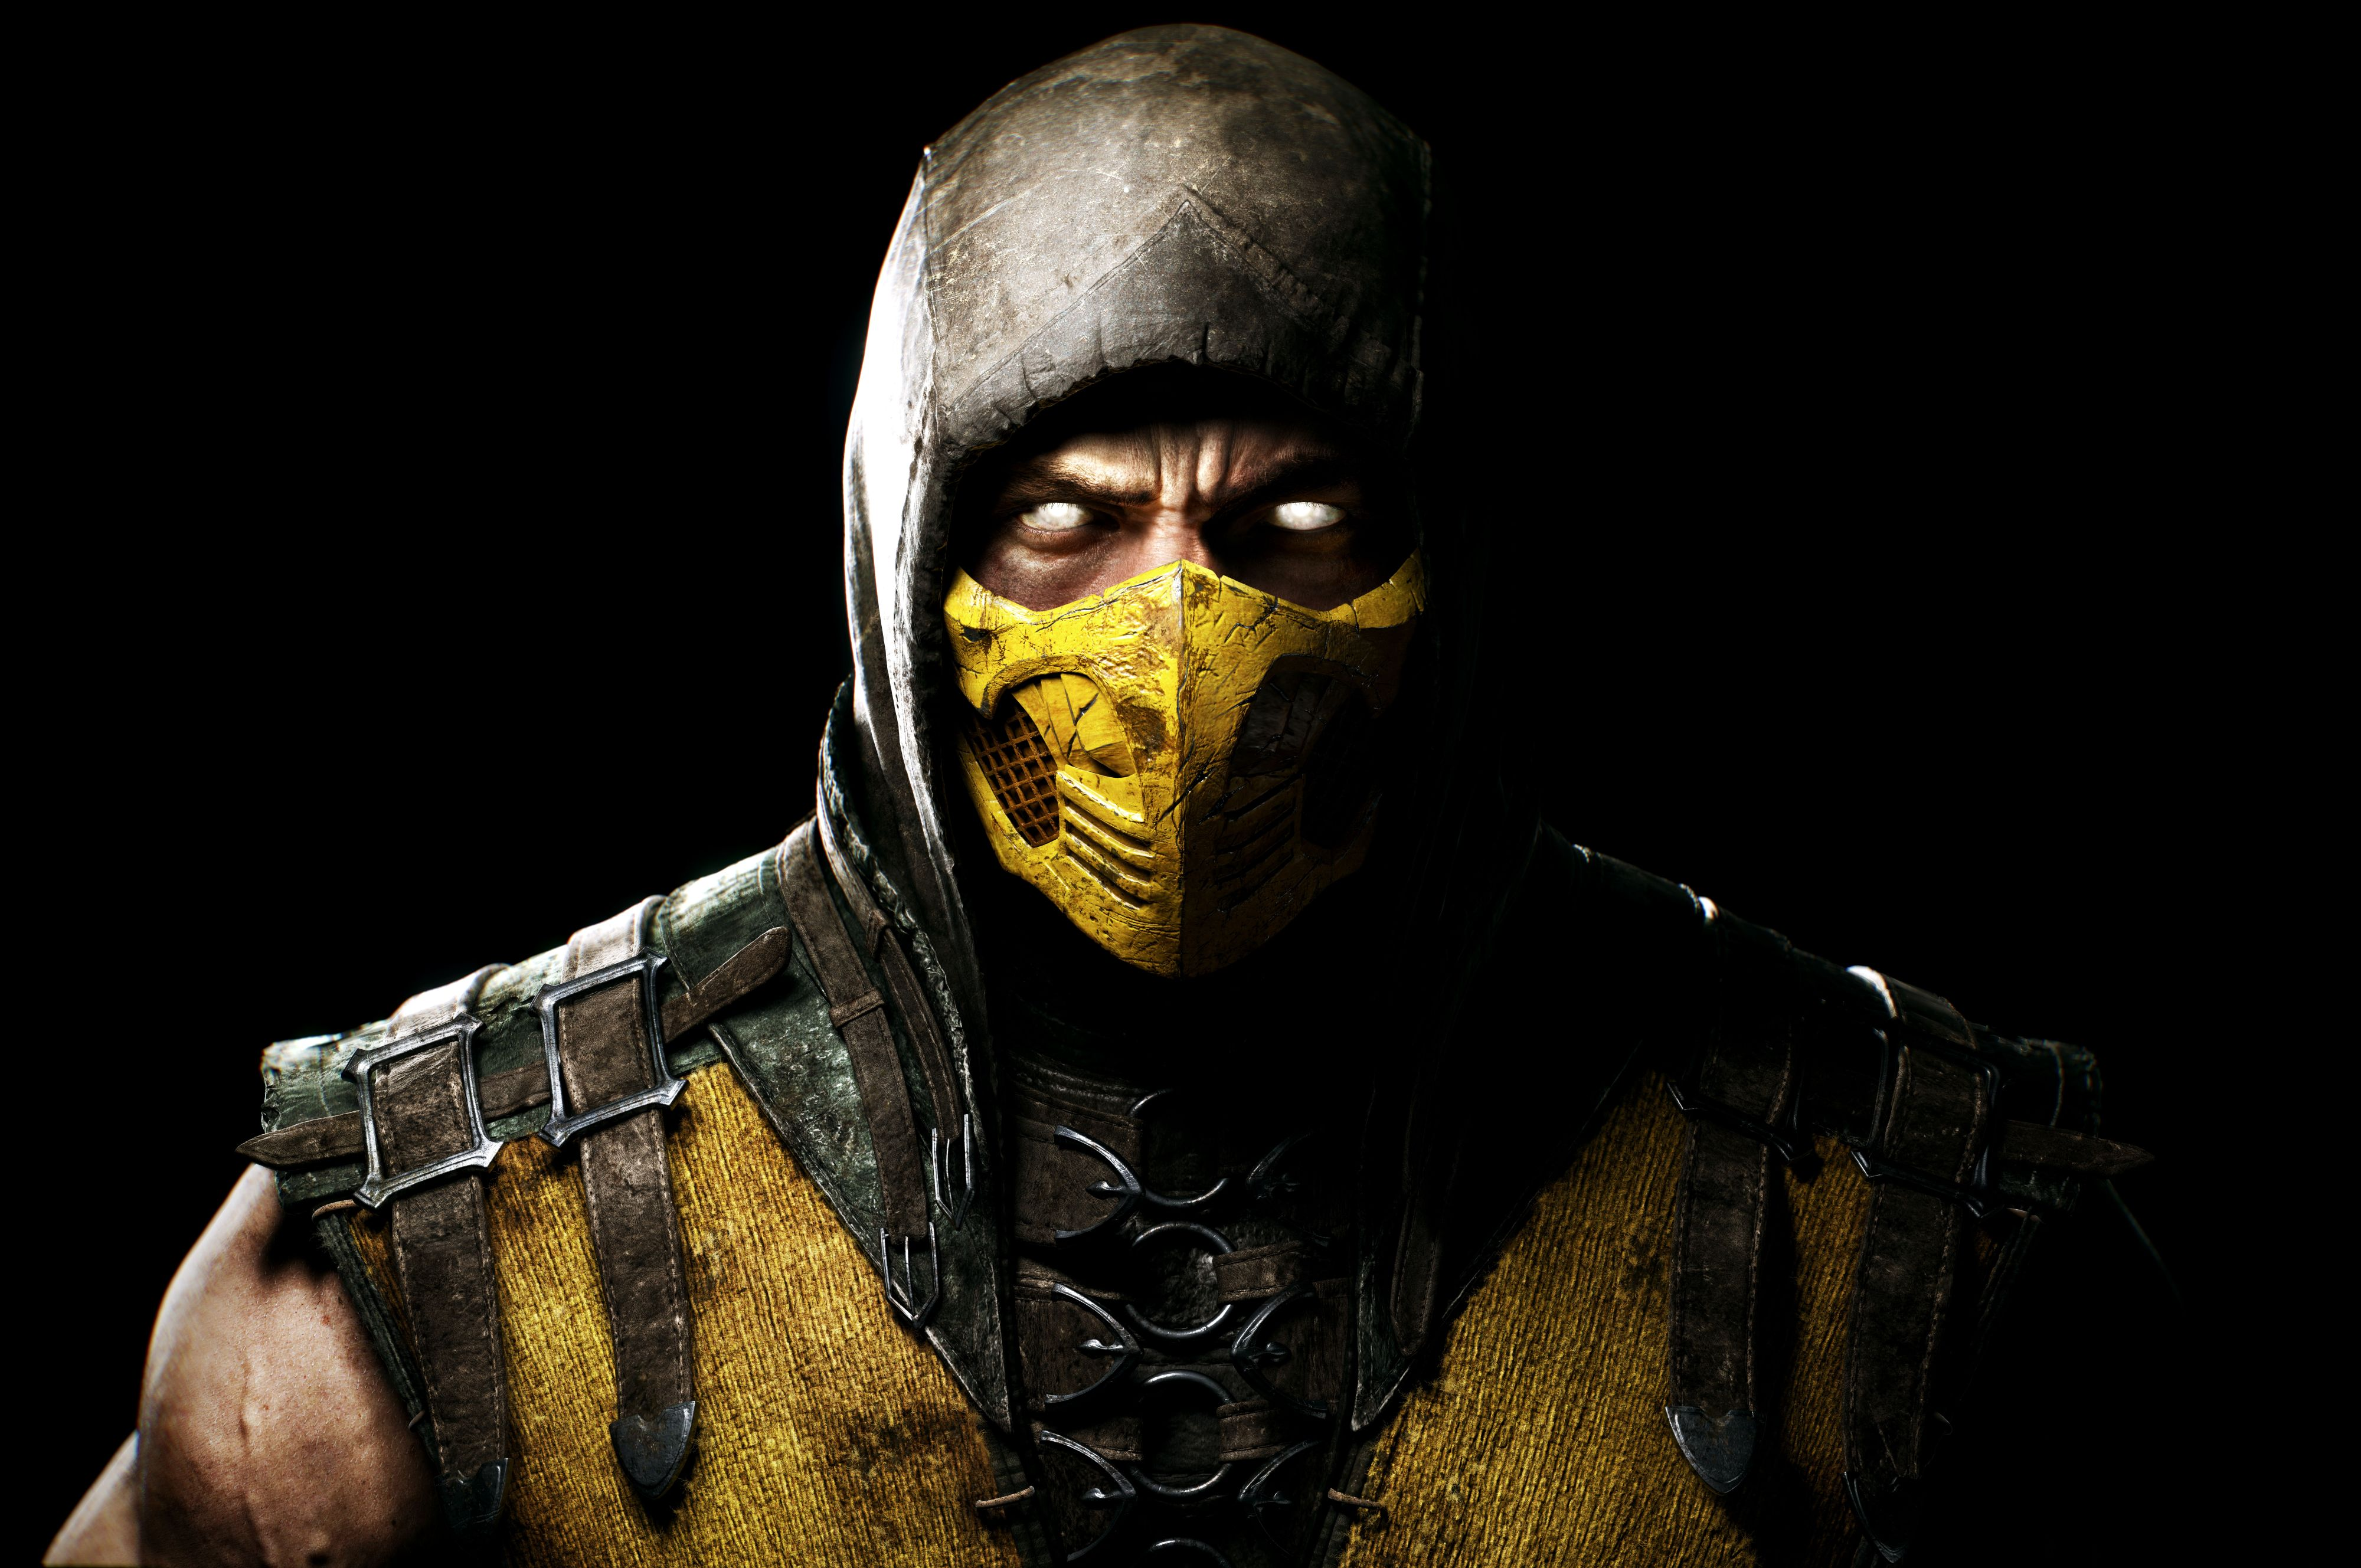 MortalKombatX_Scorpion requisiti minimi di sistema per giocarci anche al pc